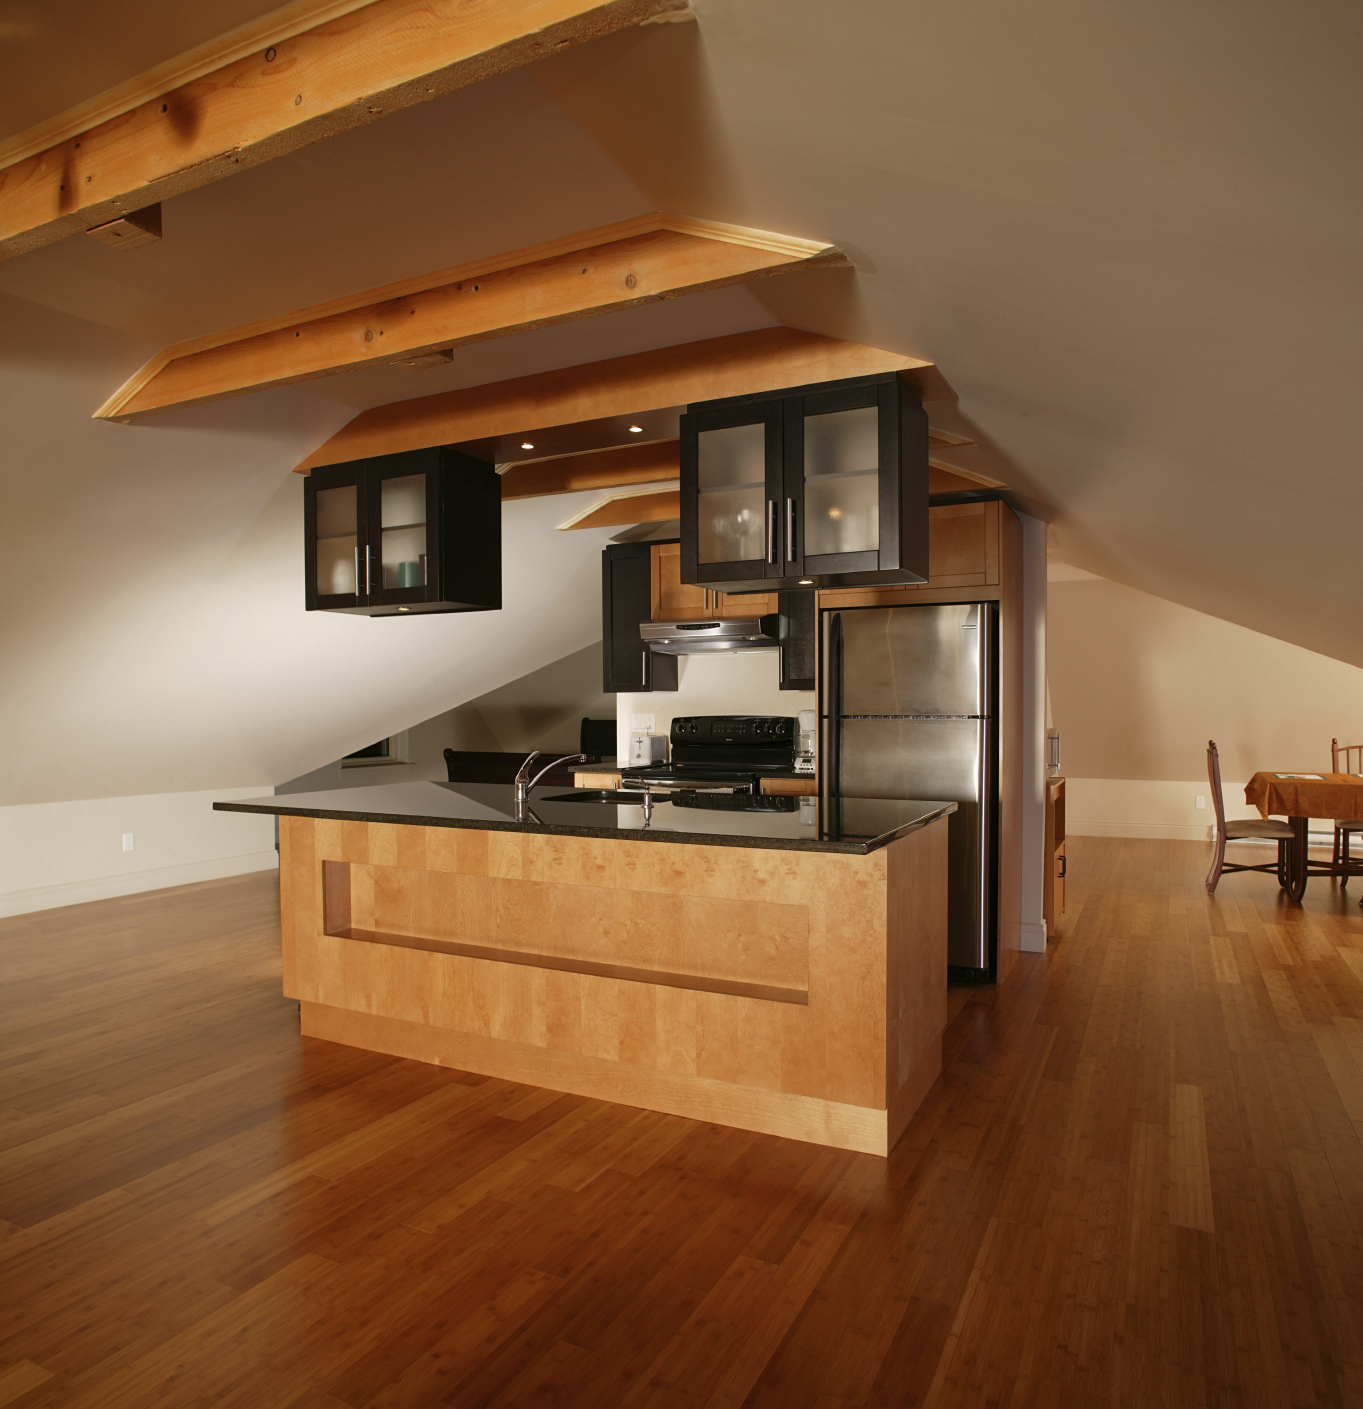 Natural wood hues throughout this large kitchen featuring commanding